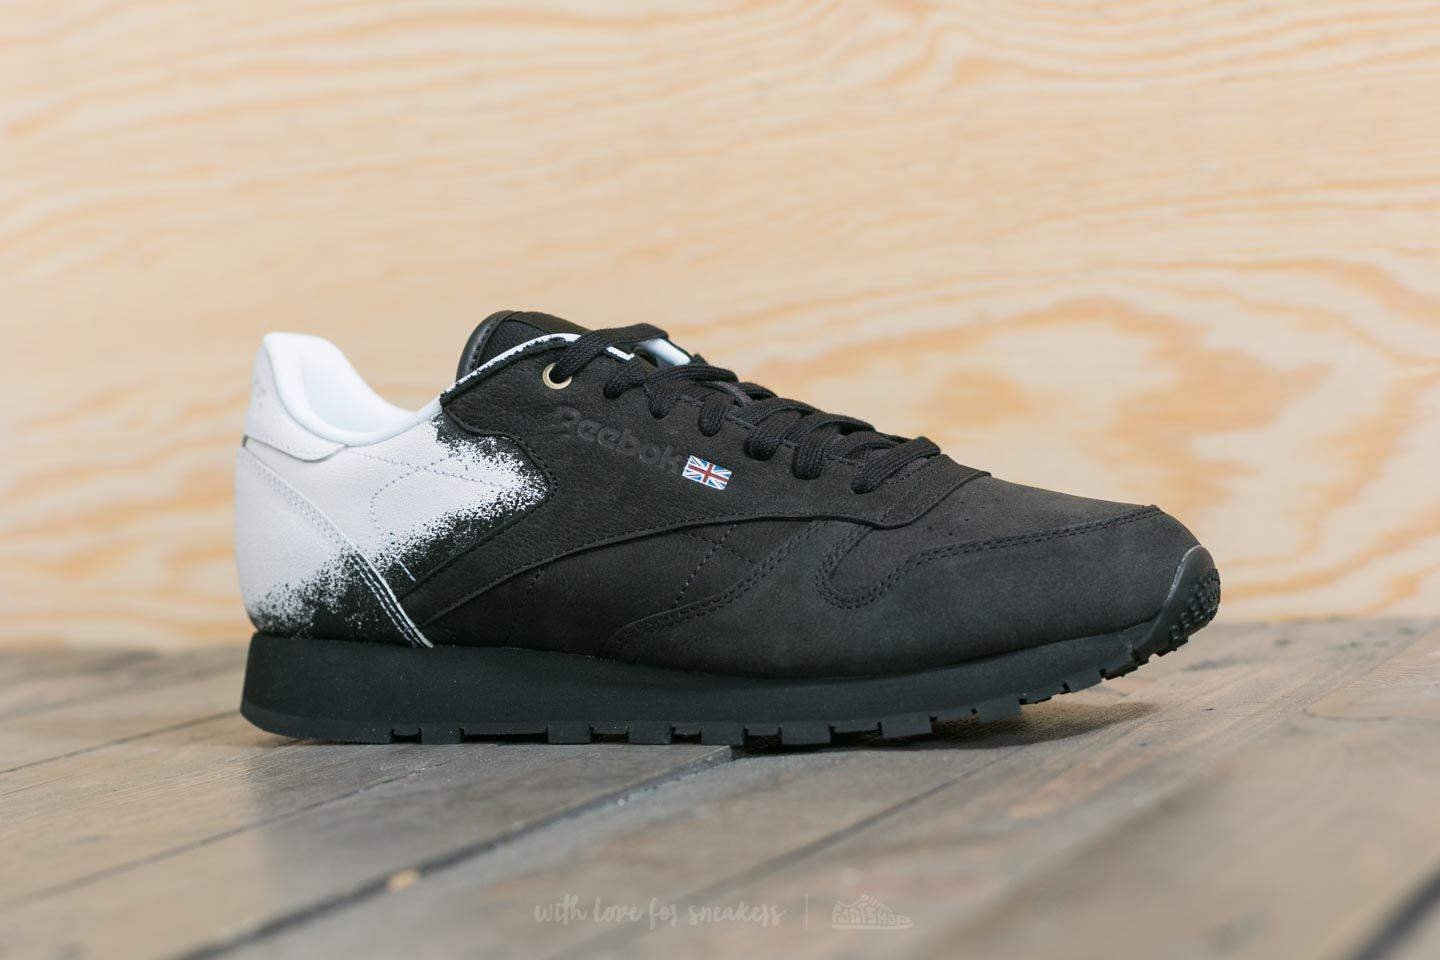 Lyst - Reebok Reebok X Montana Cans Classic Leather Black  White in ... 6c2abc644